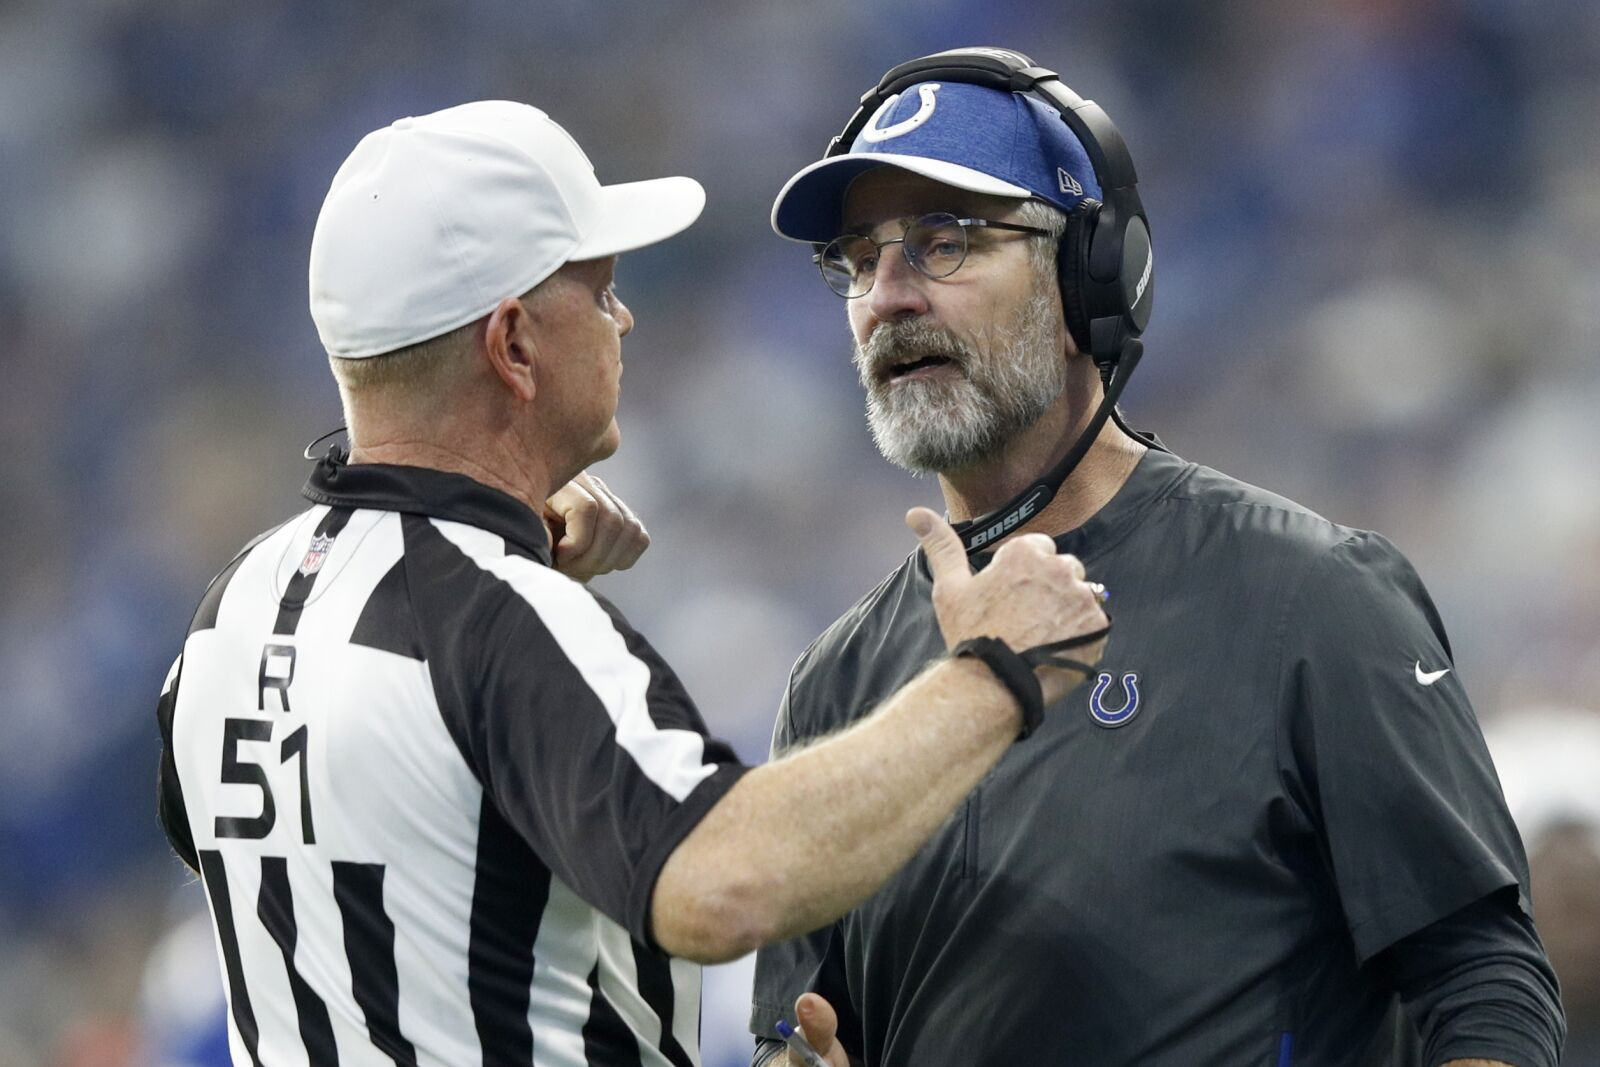 Colts' coaches need offseason work too